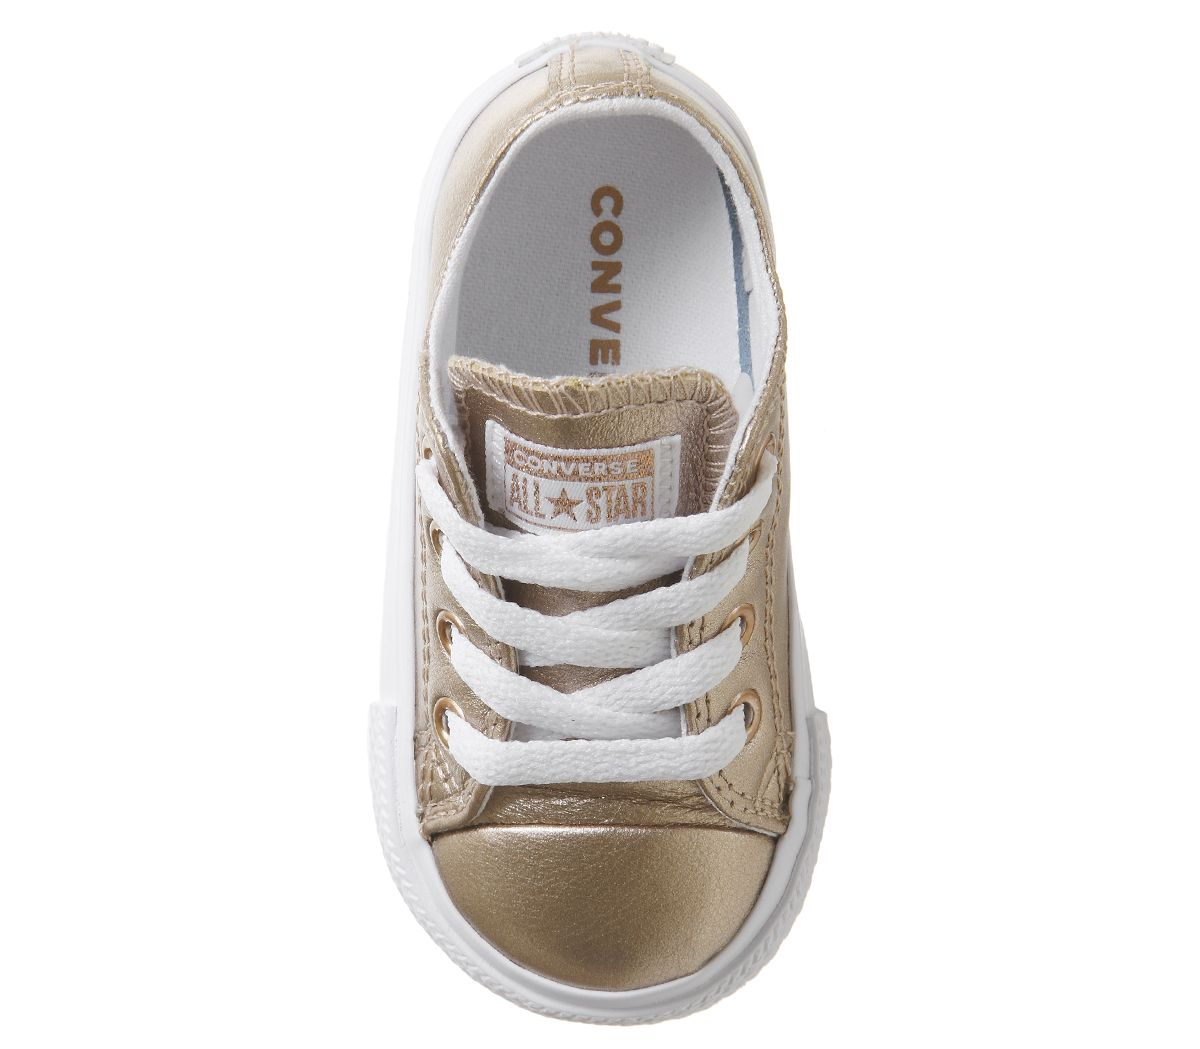 be8ebdfa0dab15 Converse All Star Ox Leather Infant Rose Gold Metallic Exclusive ...